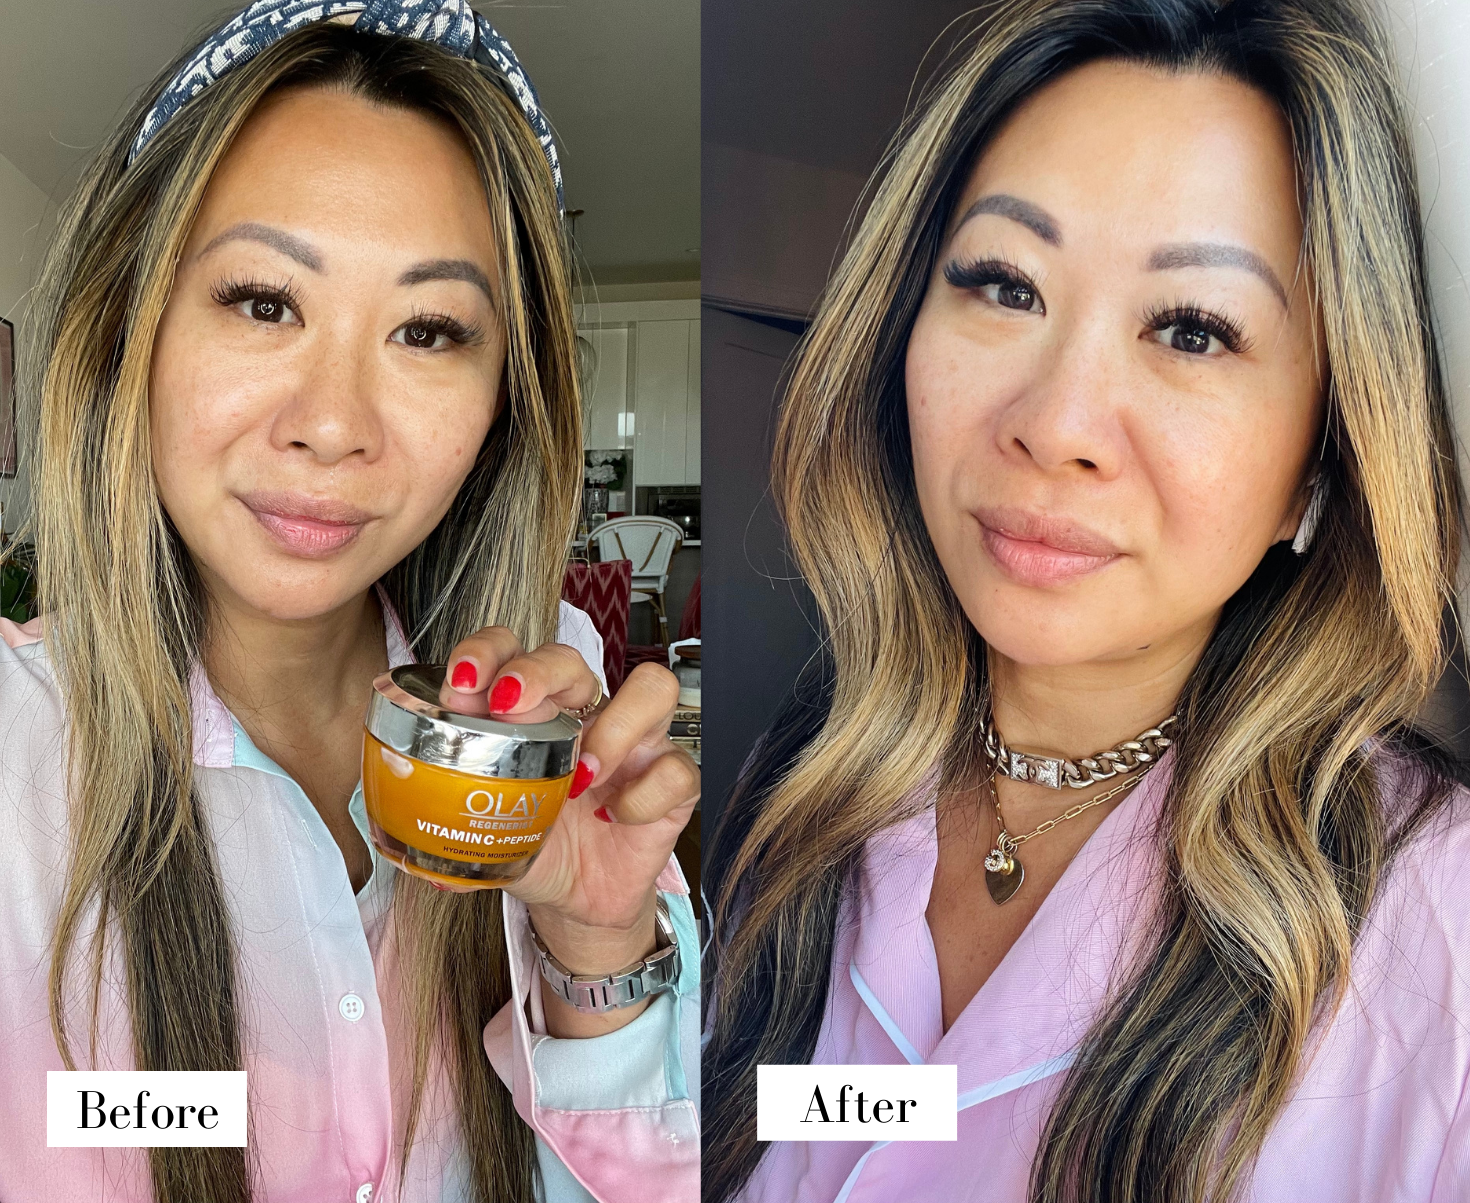 Olay Vitamin C Moisturizer Before and After, Olay vitamin C moisturizer, vitamin c moisturizer, skincare routine, beauty routine, beauty photography, skincare photography, skincare aesthetic, serum photography ideas, Red Soles and Red Wine, Jennifer Worman